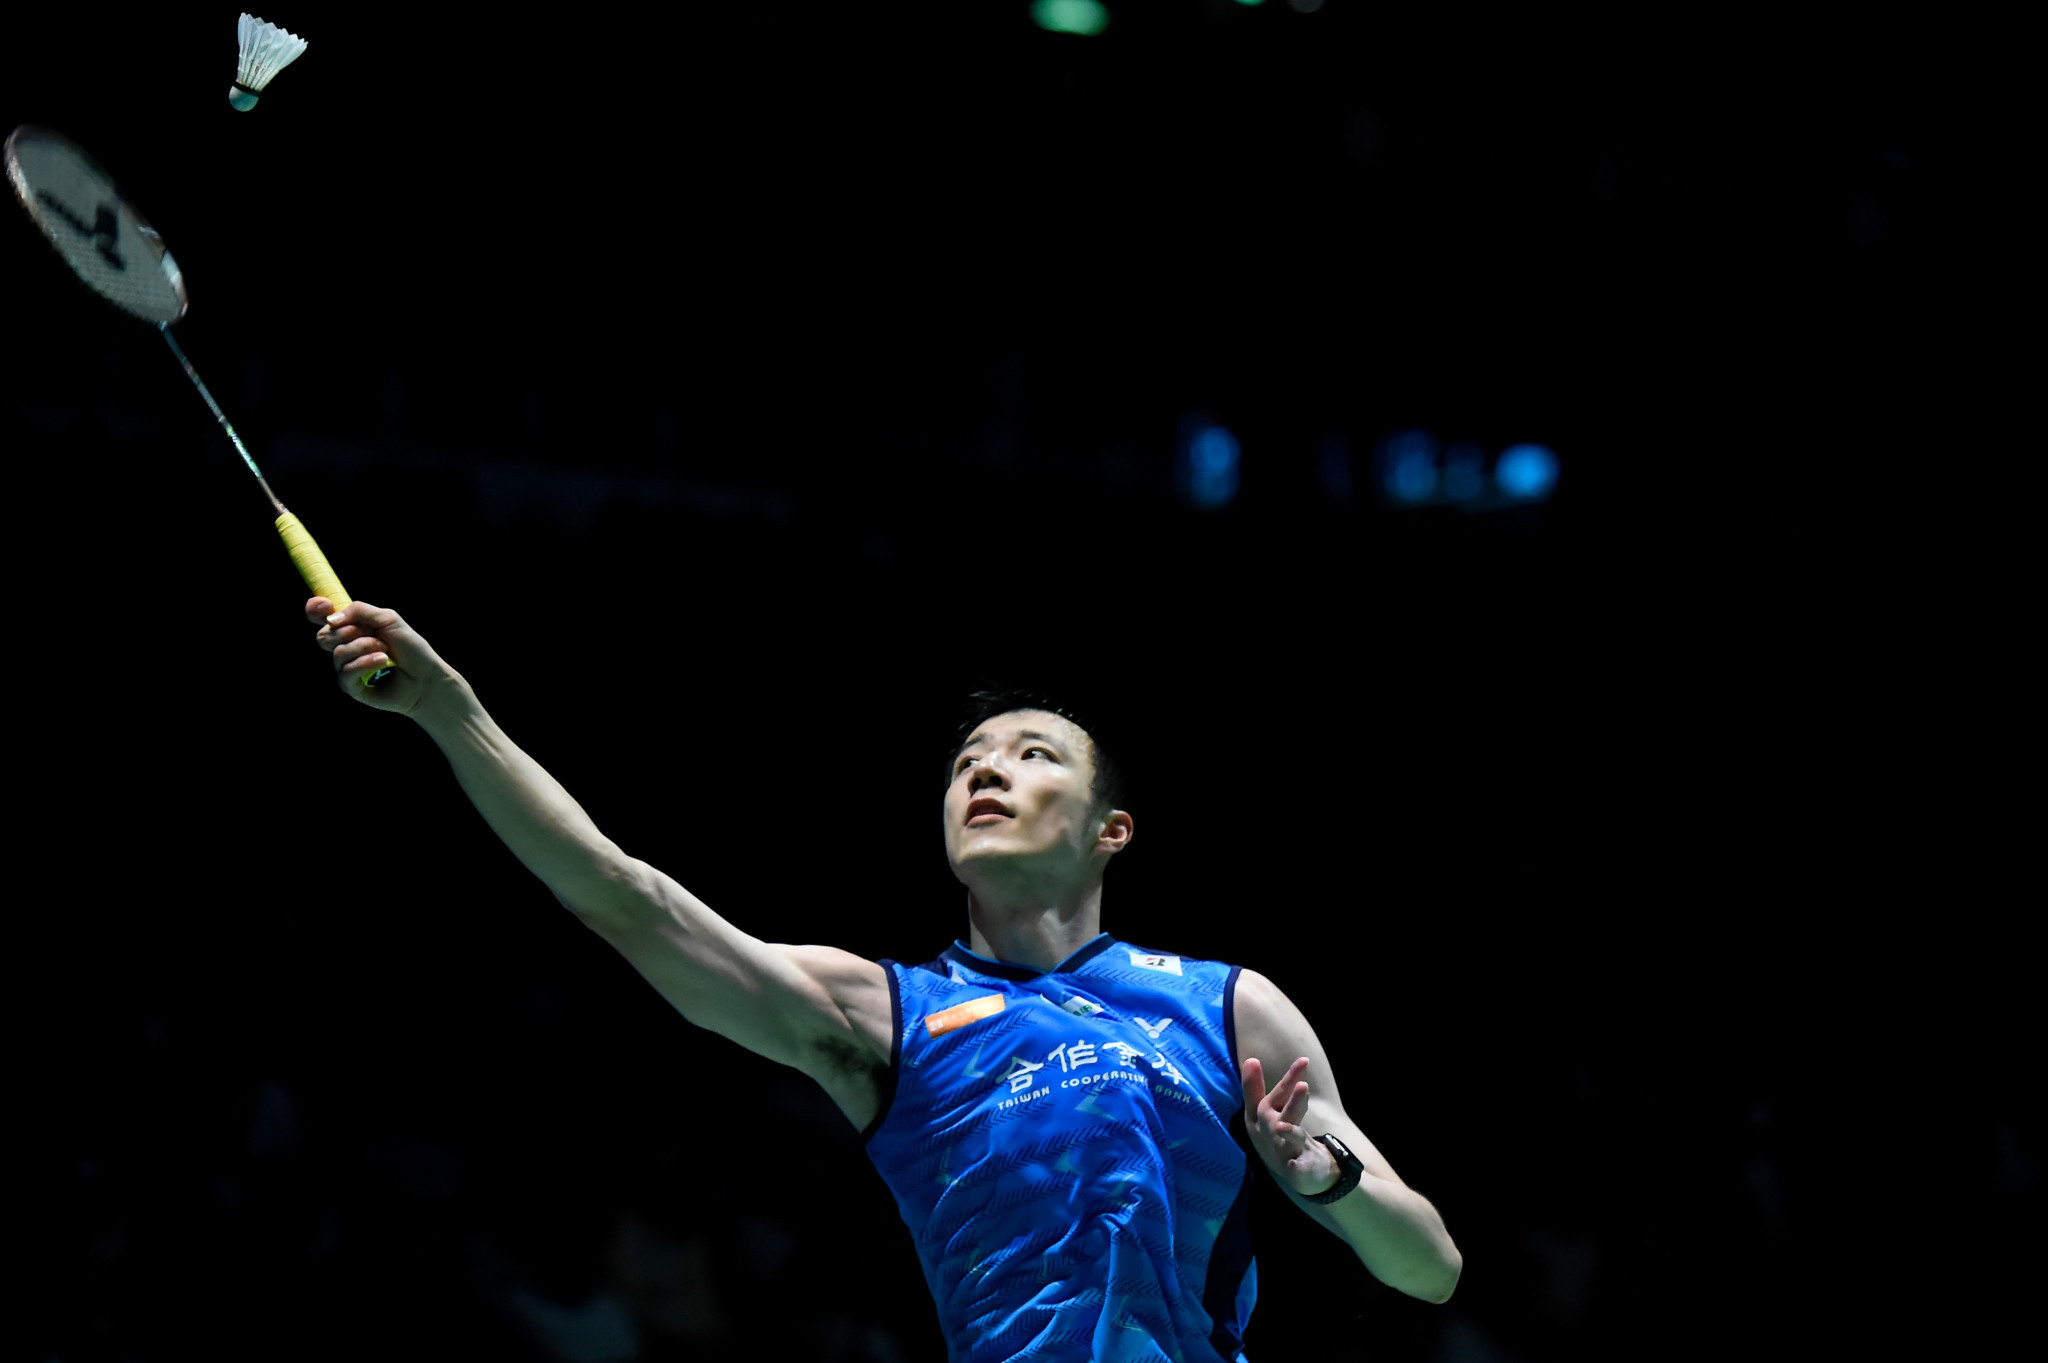 Danish seeds toppled at BWF Korea Open